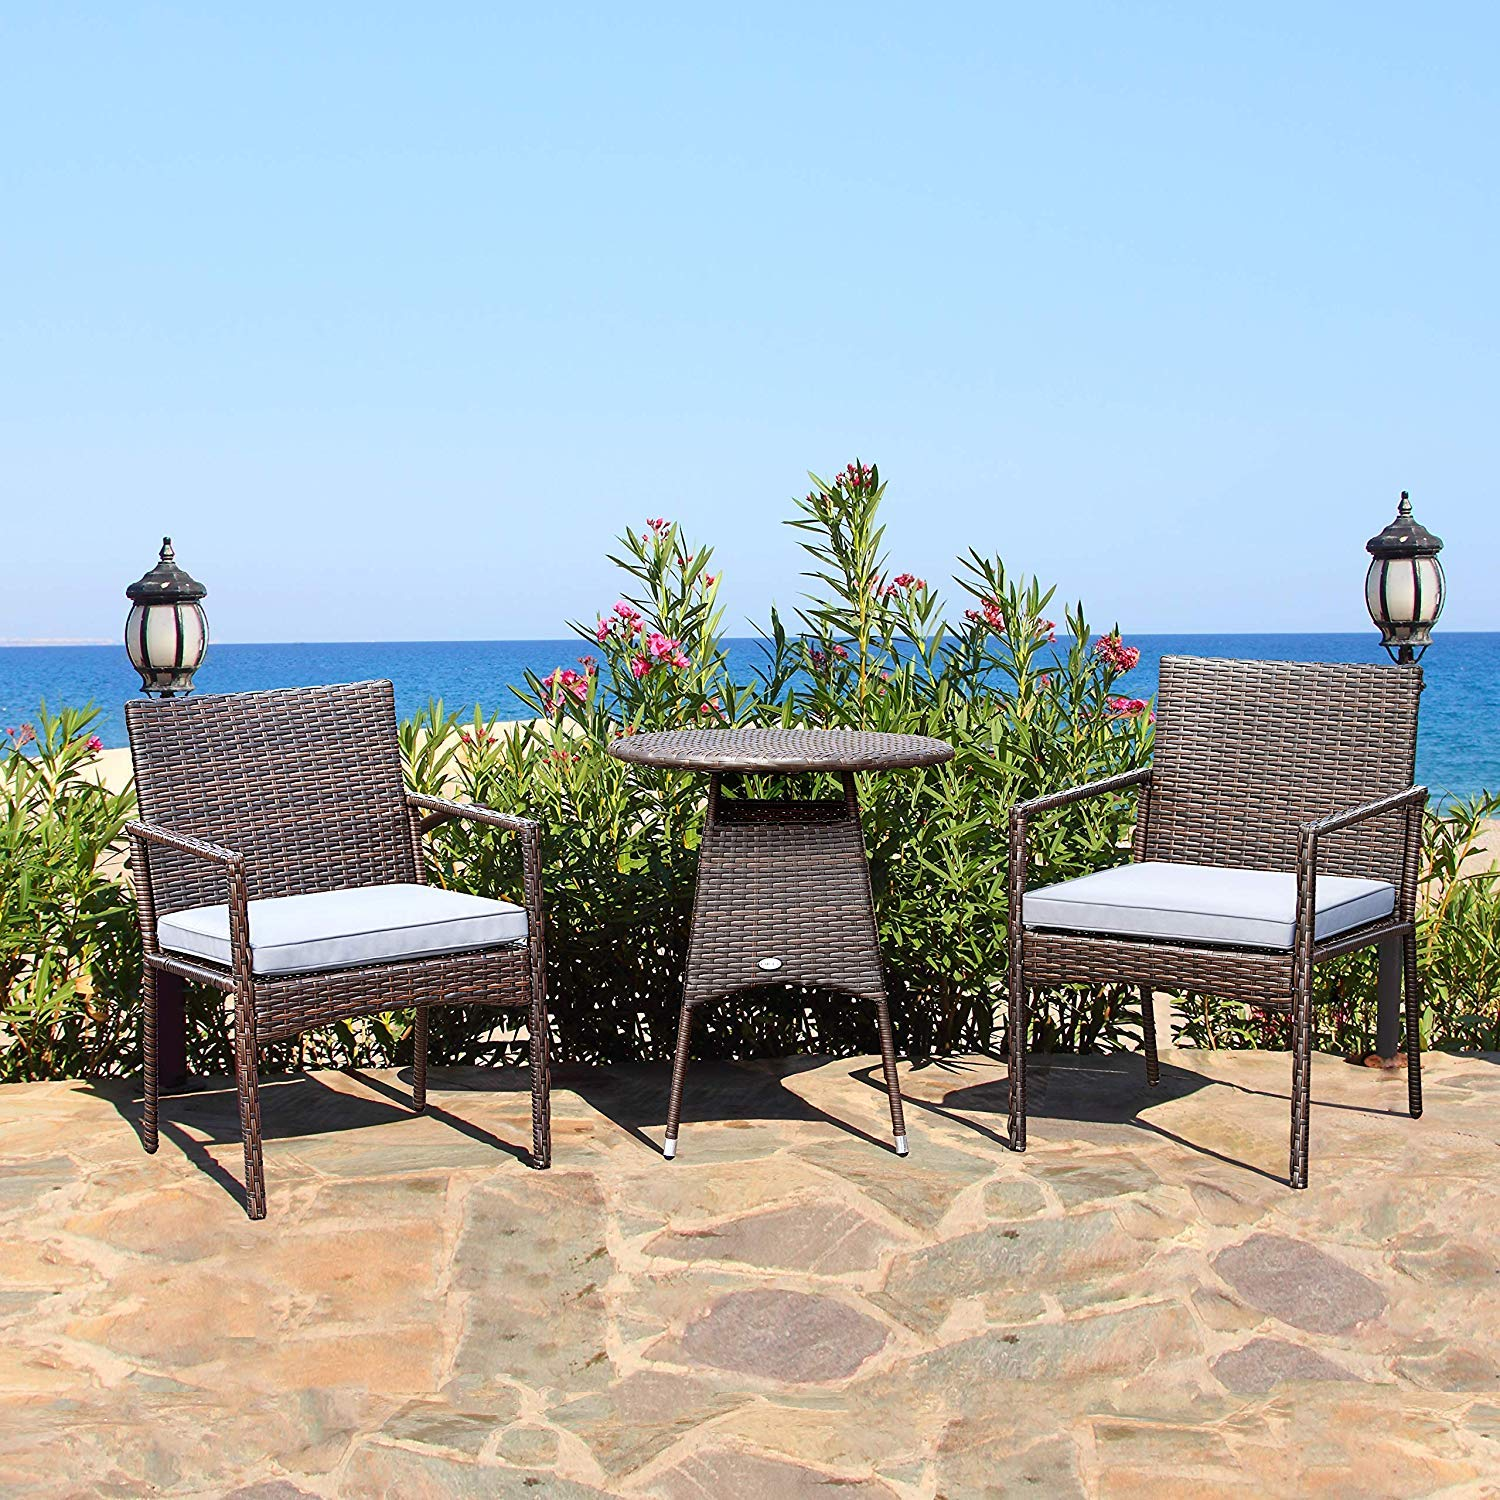 Tangkula 3 Piece Patio Furniture Set Outdoor Wicker Rattan Conversation Set Chill Time Modern Outdoor Furniture 2 Cushioned Chairs /& End Table Backyard Garden Lawn Chat Set